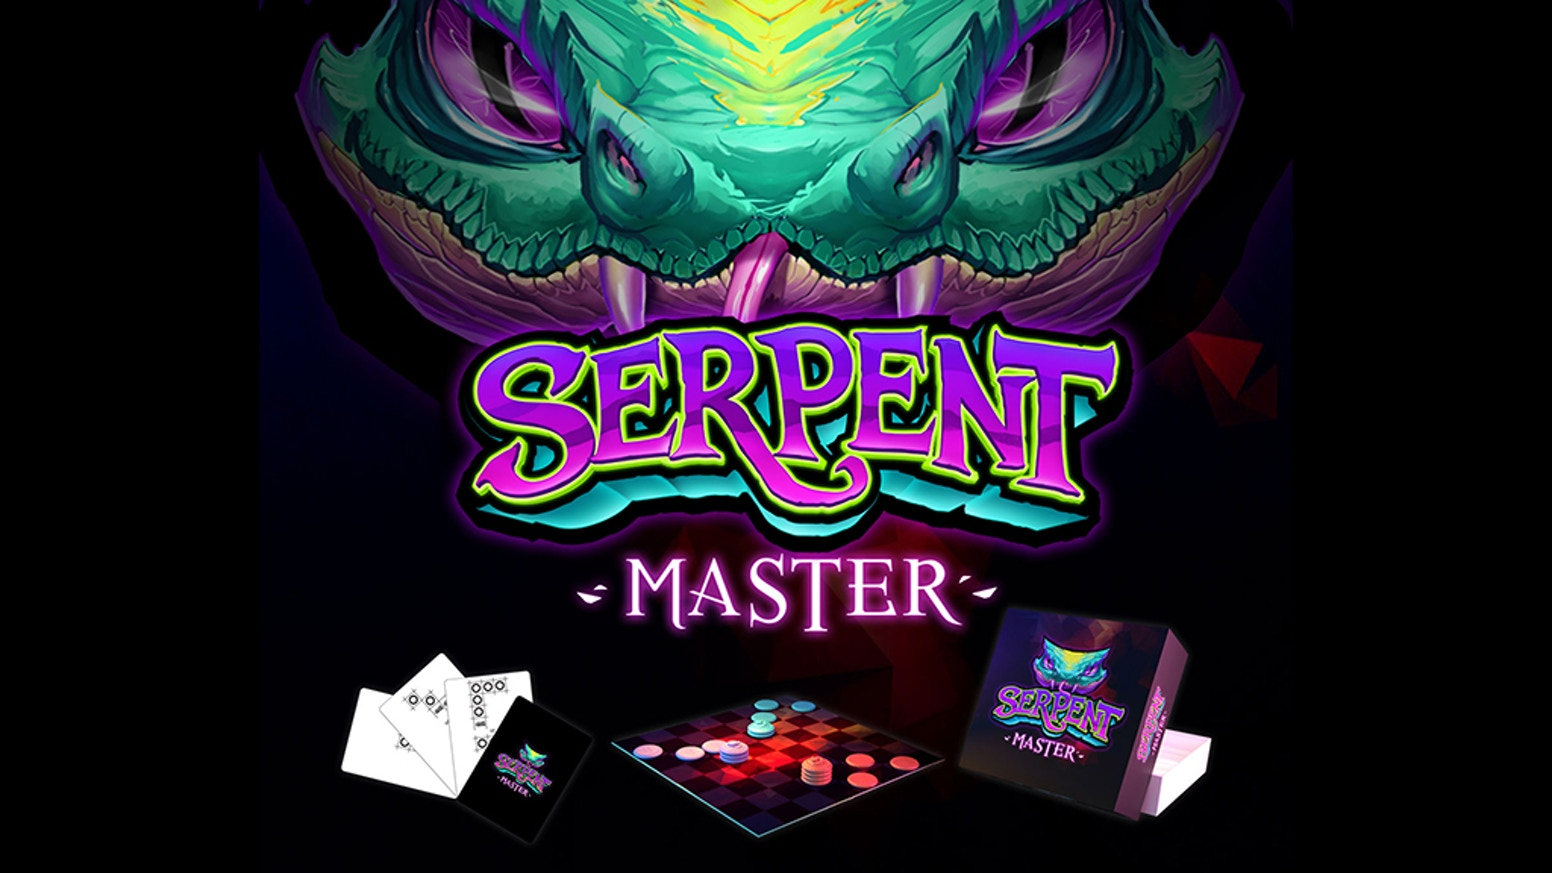 Serpent Master -- A fun, light game of trying to be on top and stay on top. Game includes simultaneous play with a strategic element.